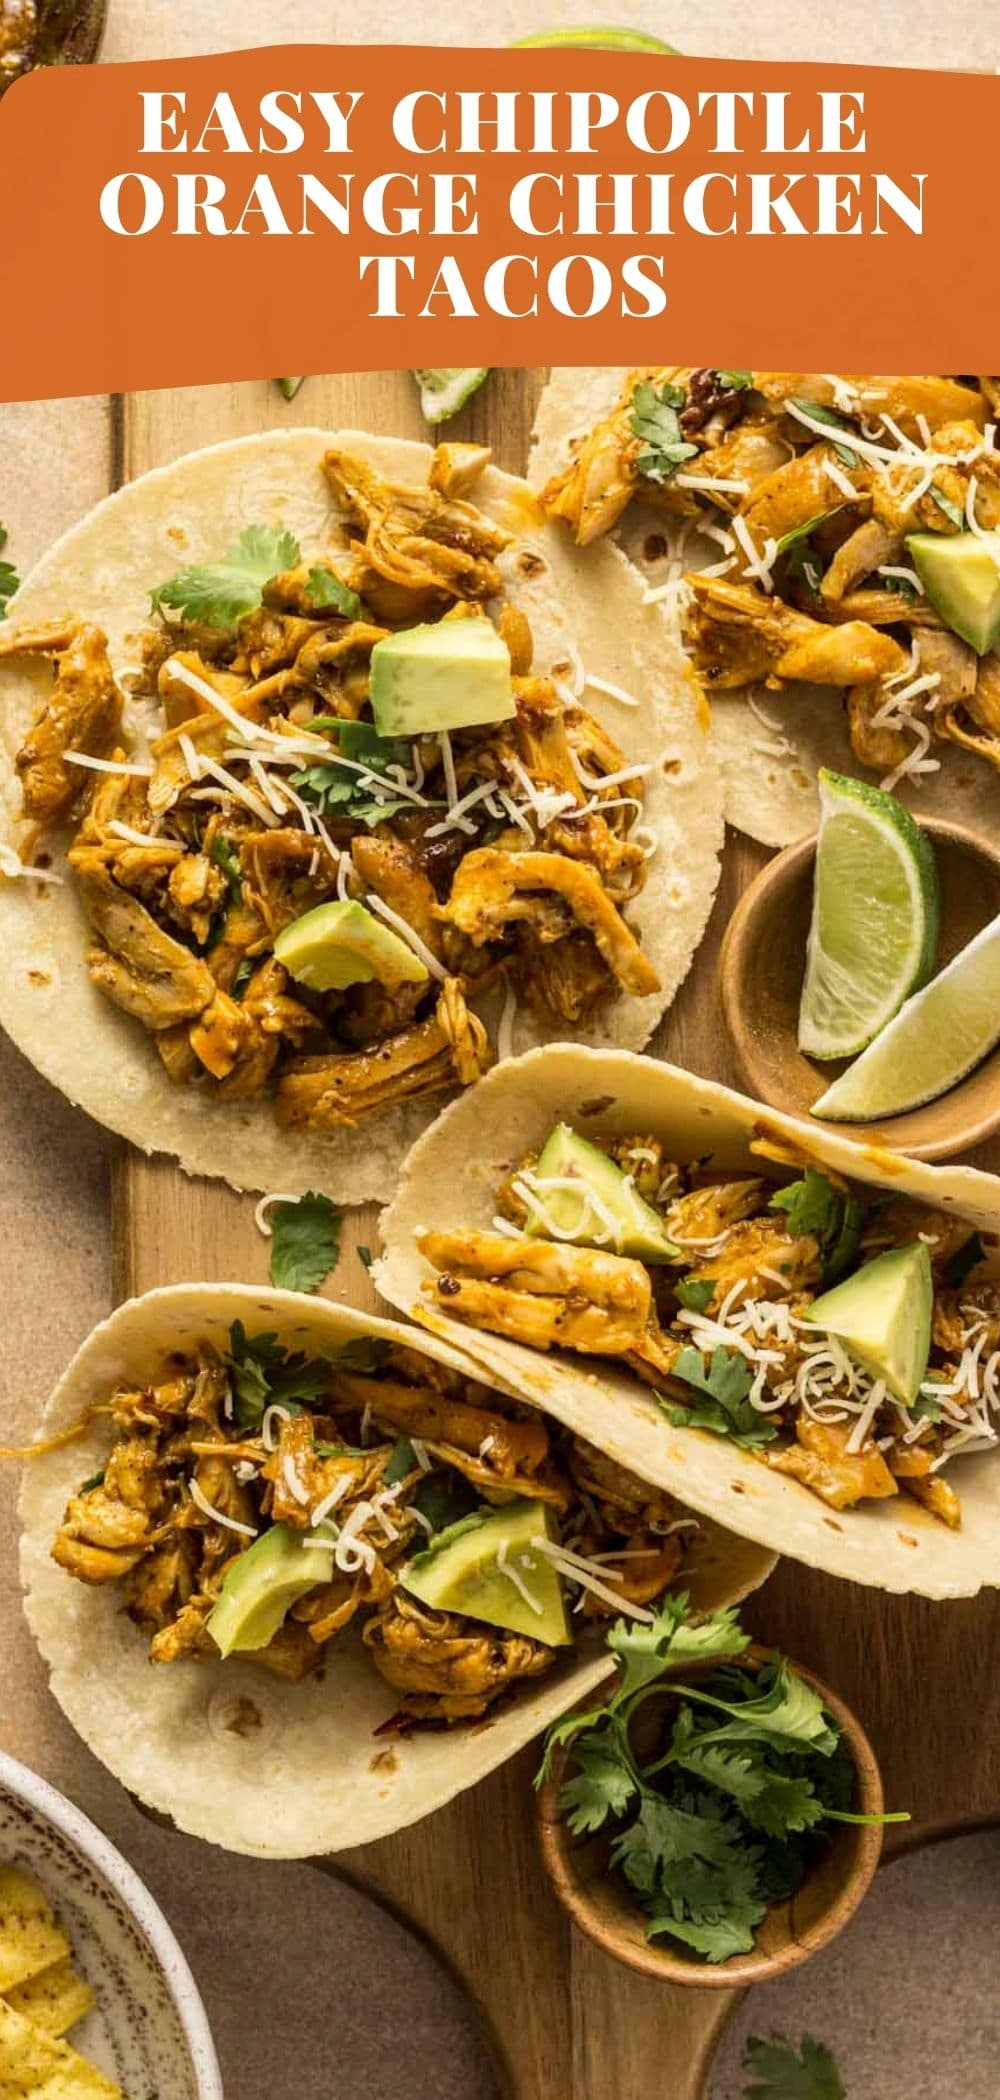 These easy chipotle orange chicken tacos will be your new favorite way to make tacos! via @bessiebakes